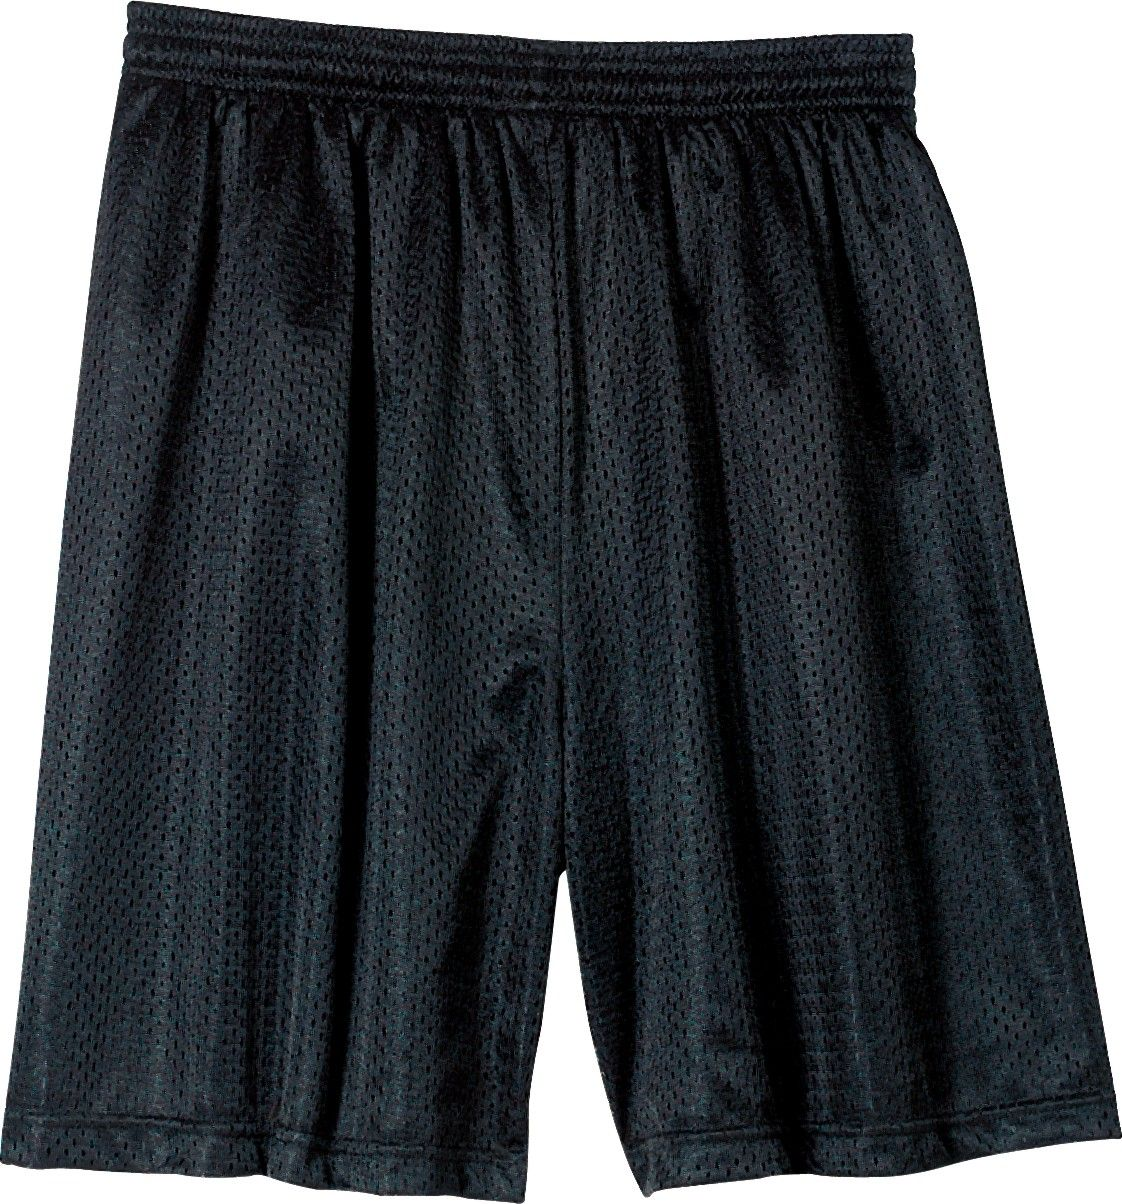 Free shipping and returns on Women's Black Shorts at report2day.ml